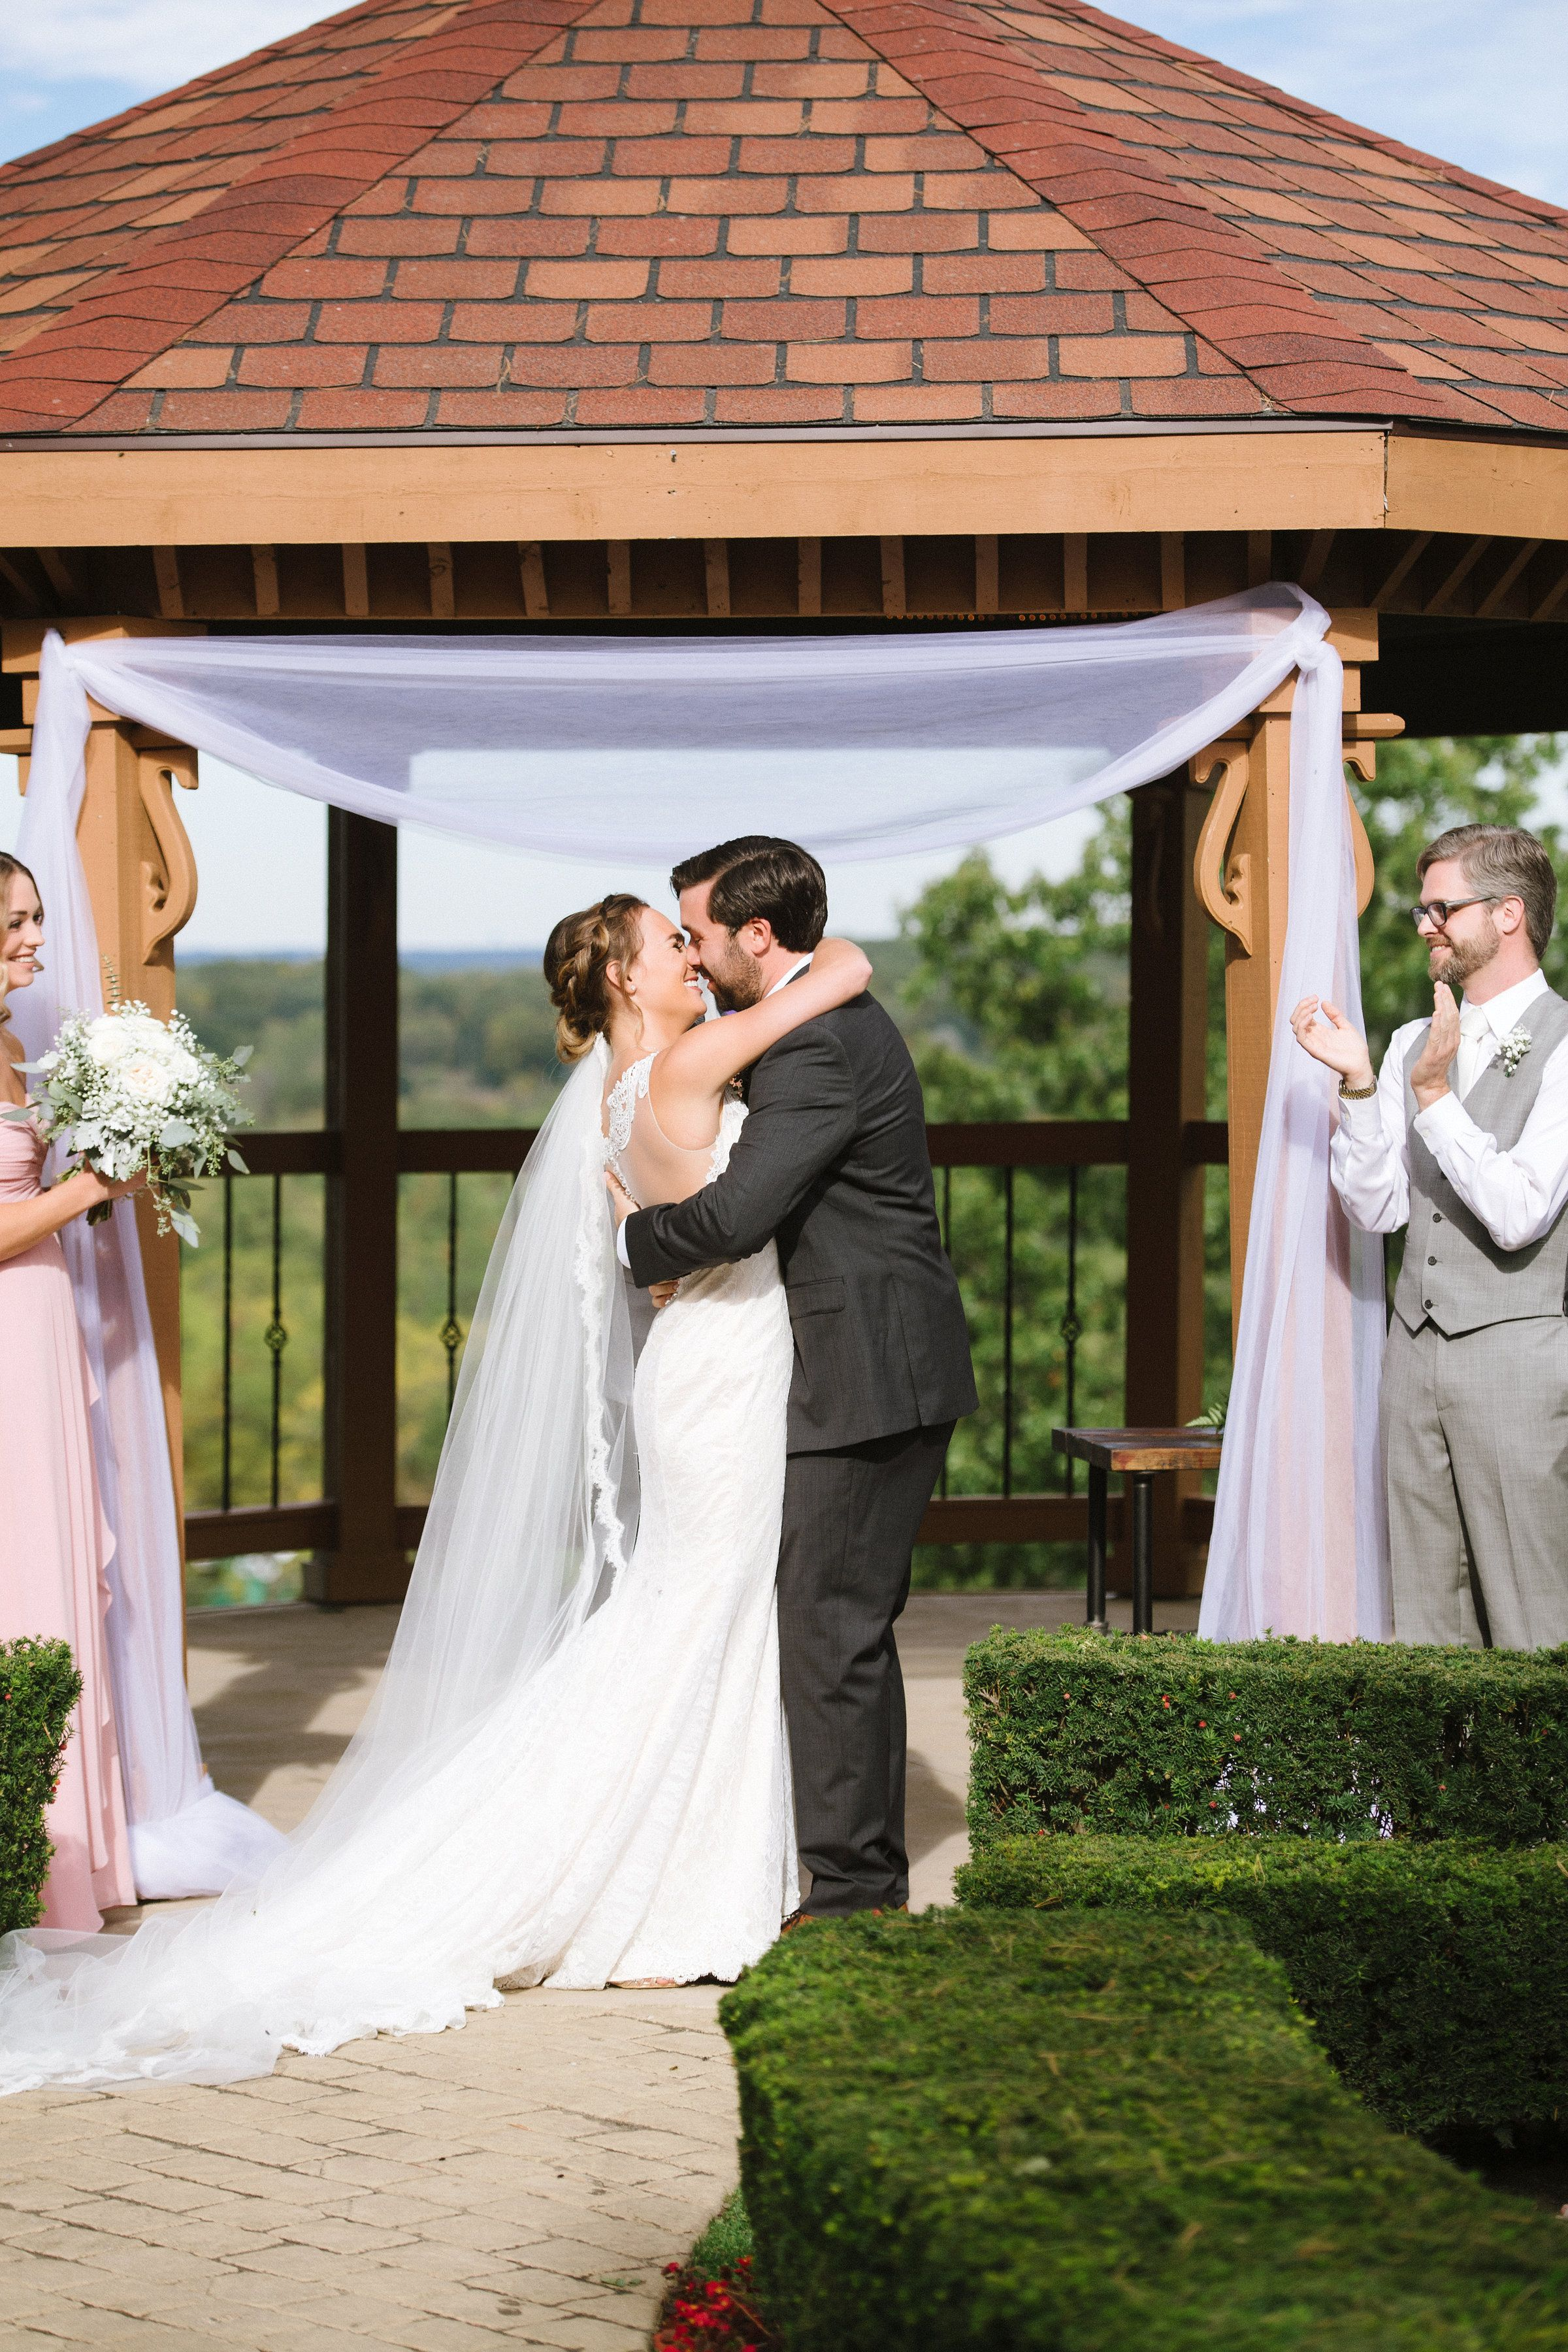 The Real Brides Of Tws The Wedding Shoppe Wedding Dress Alterations Wedding Gowns Lace Wedding Dresses Romantic